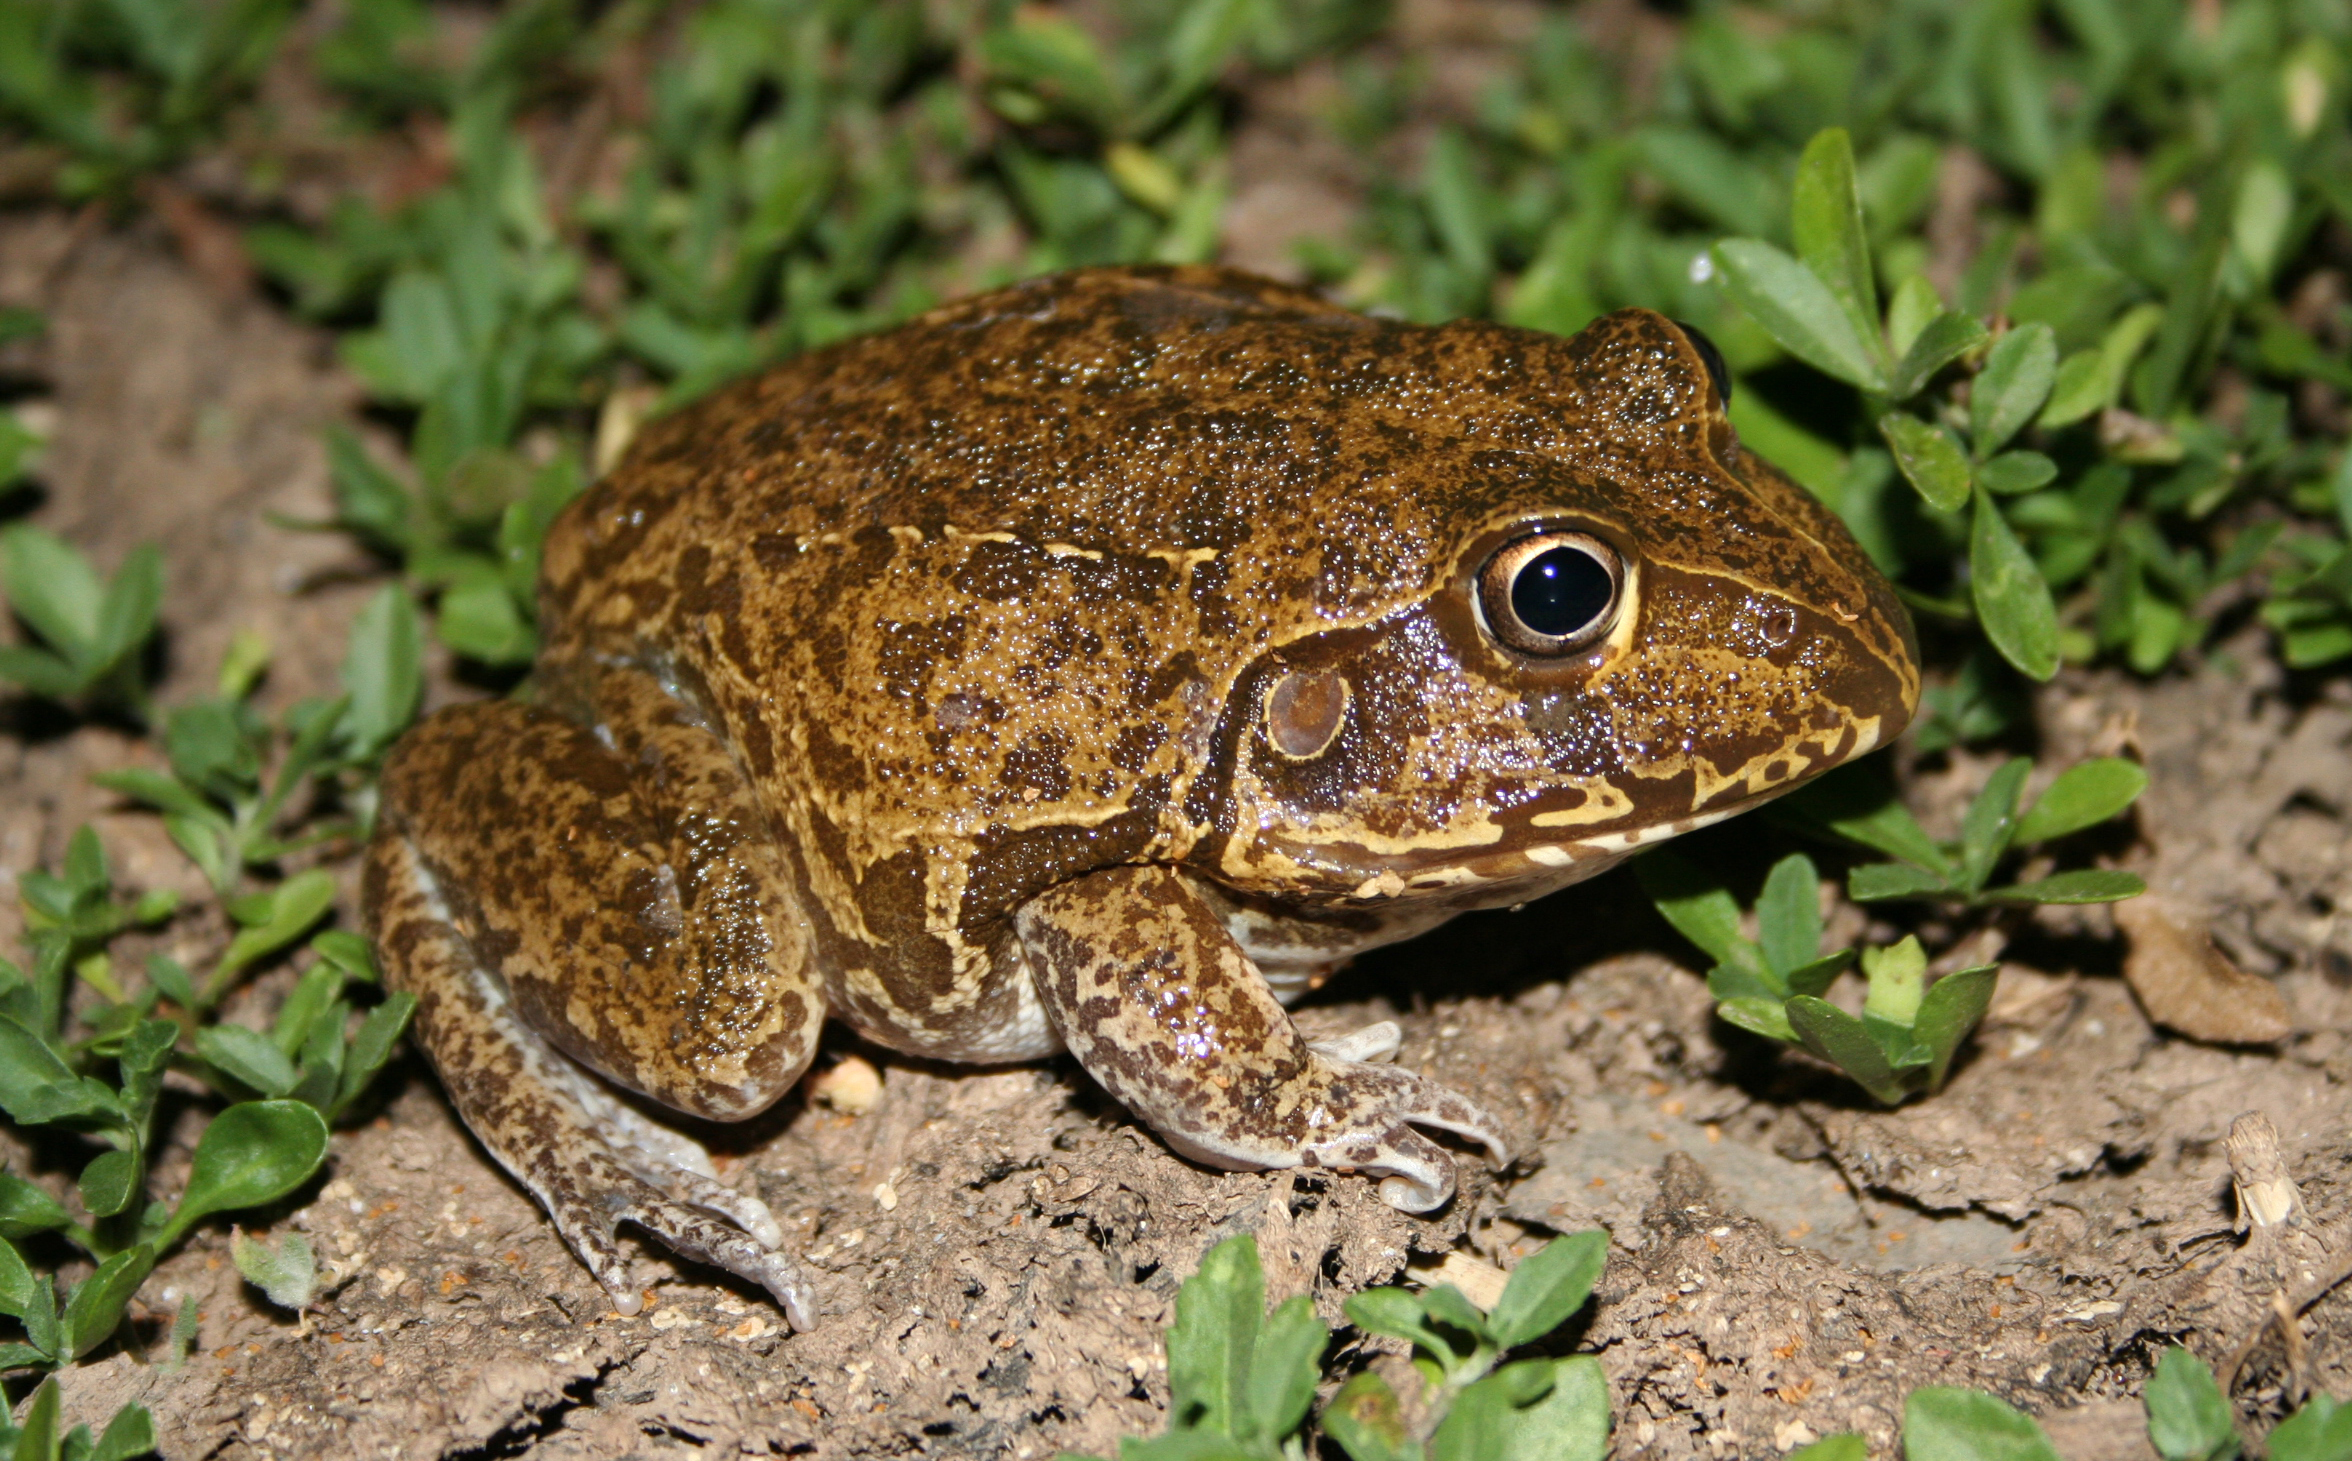 A large brown and yellow frog